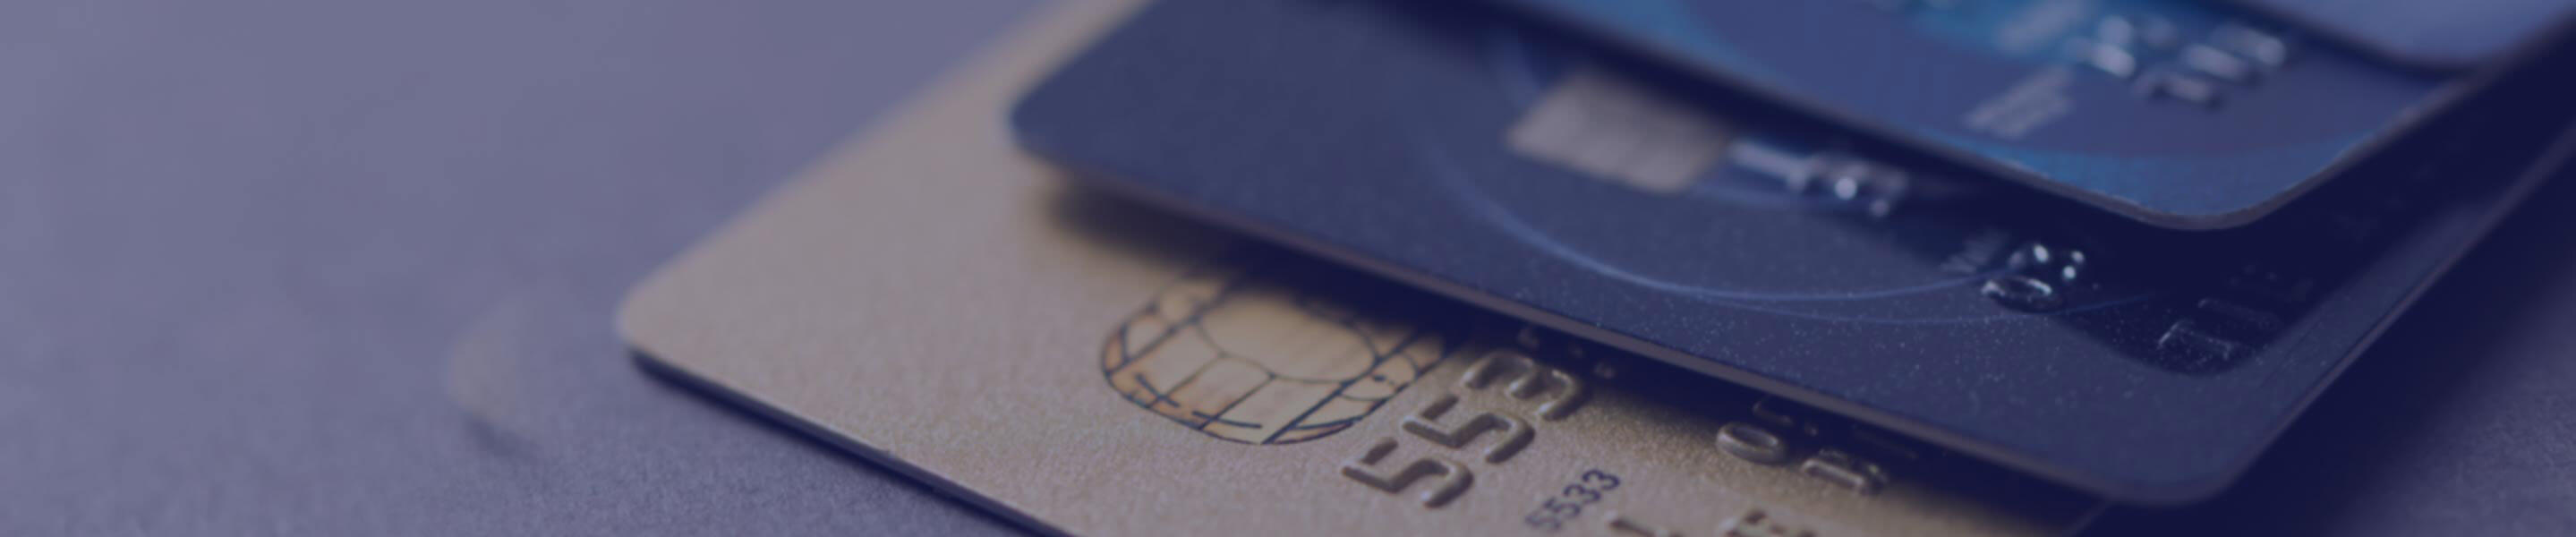 emv and payment card issuance banner